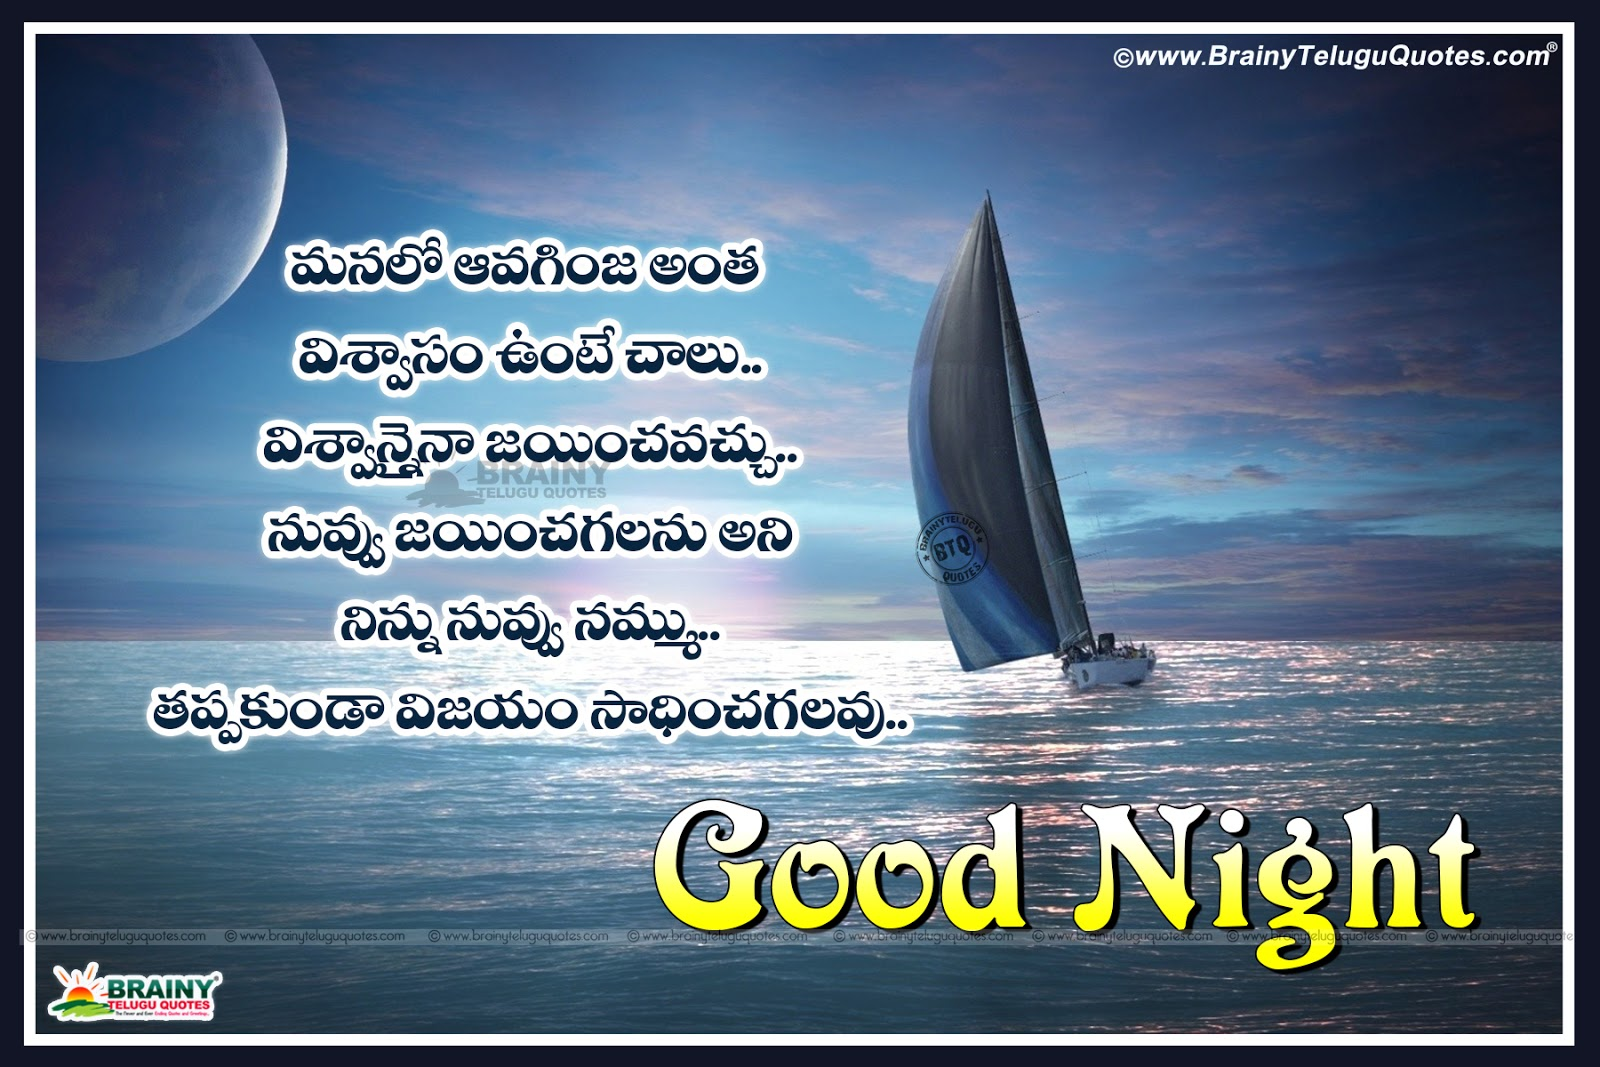 Good Night Motivational Quotes In English: Good Night Inspirational Messages Quotations In Telugu